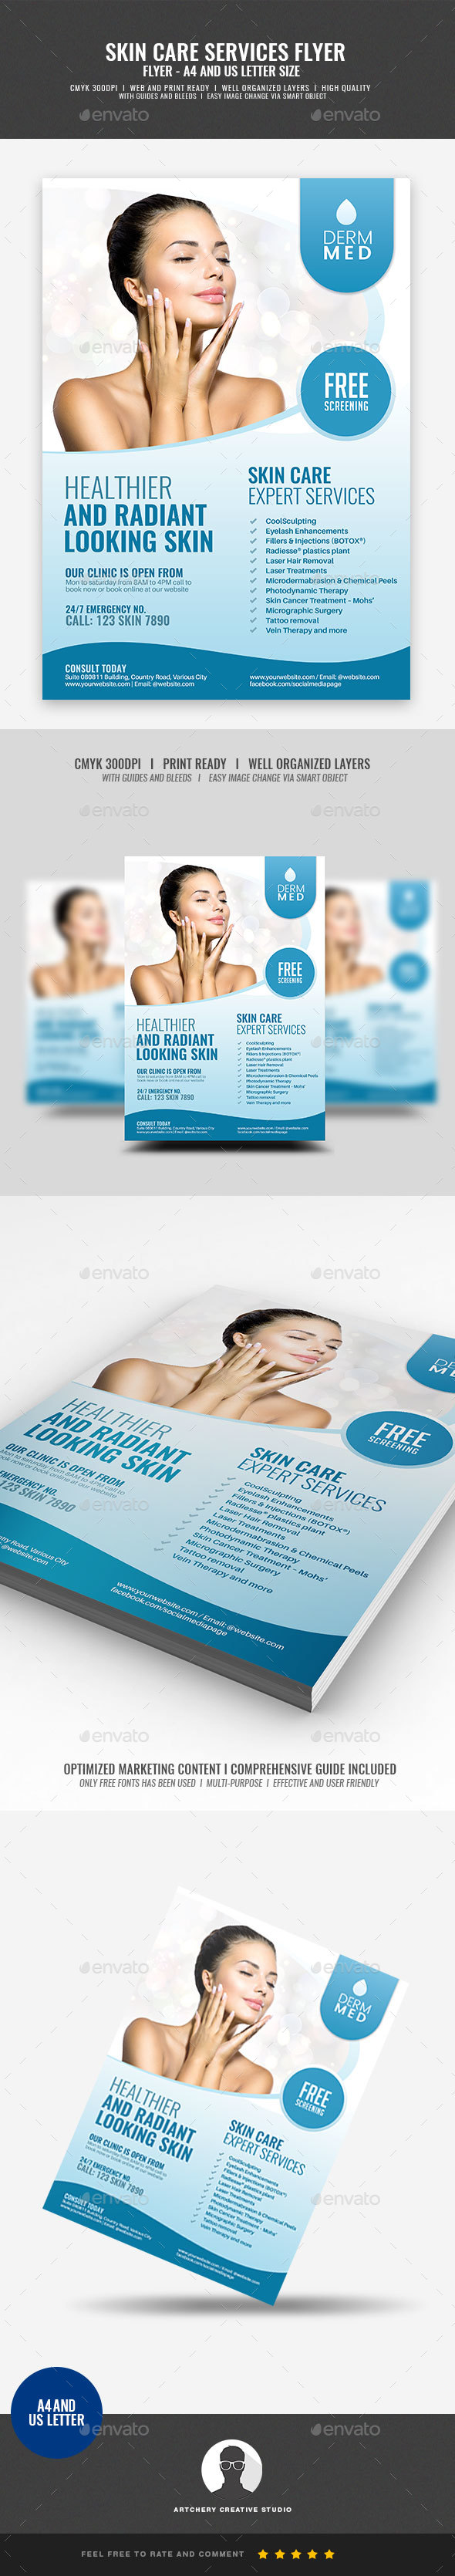 Dermatology Graphics, Designs & Templates from GraphicRiver